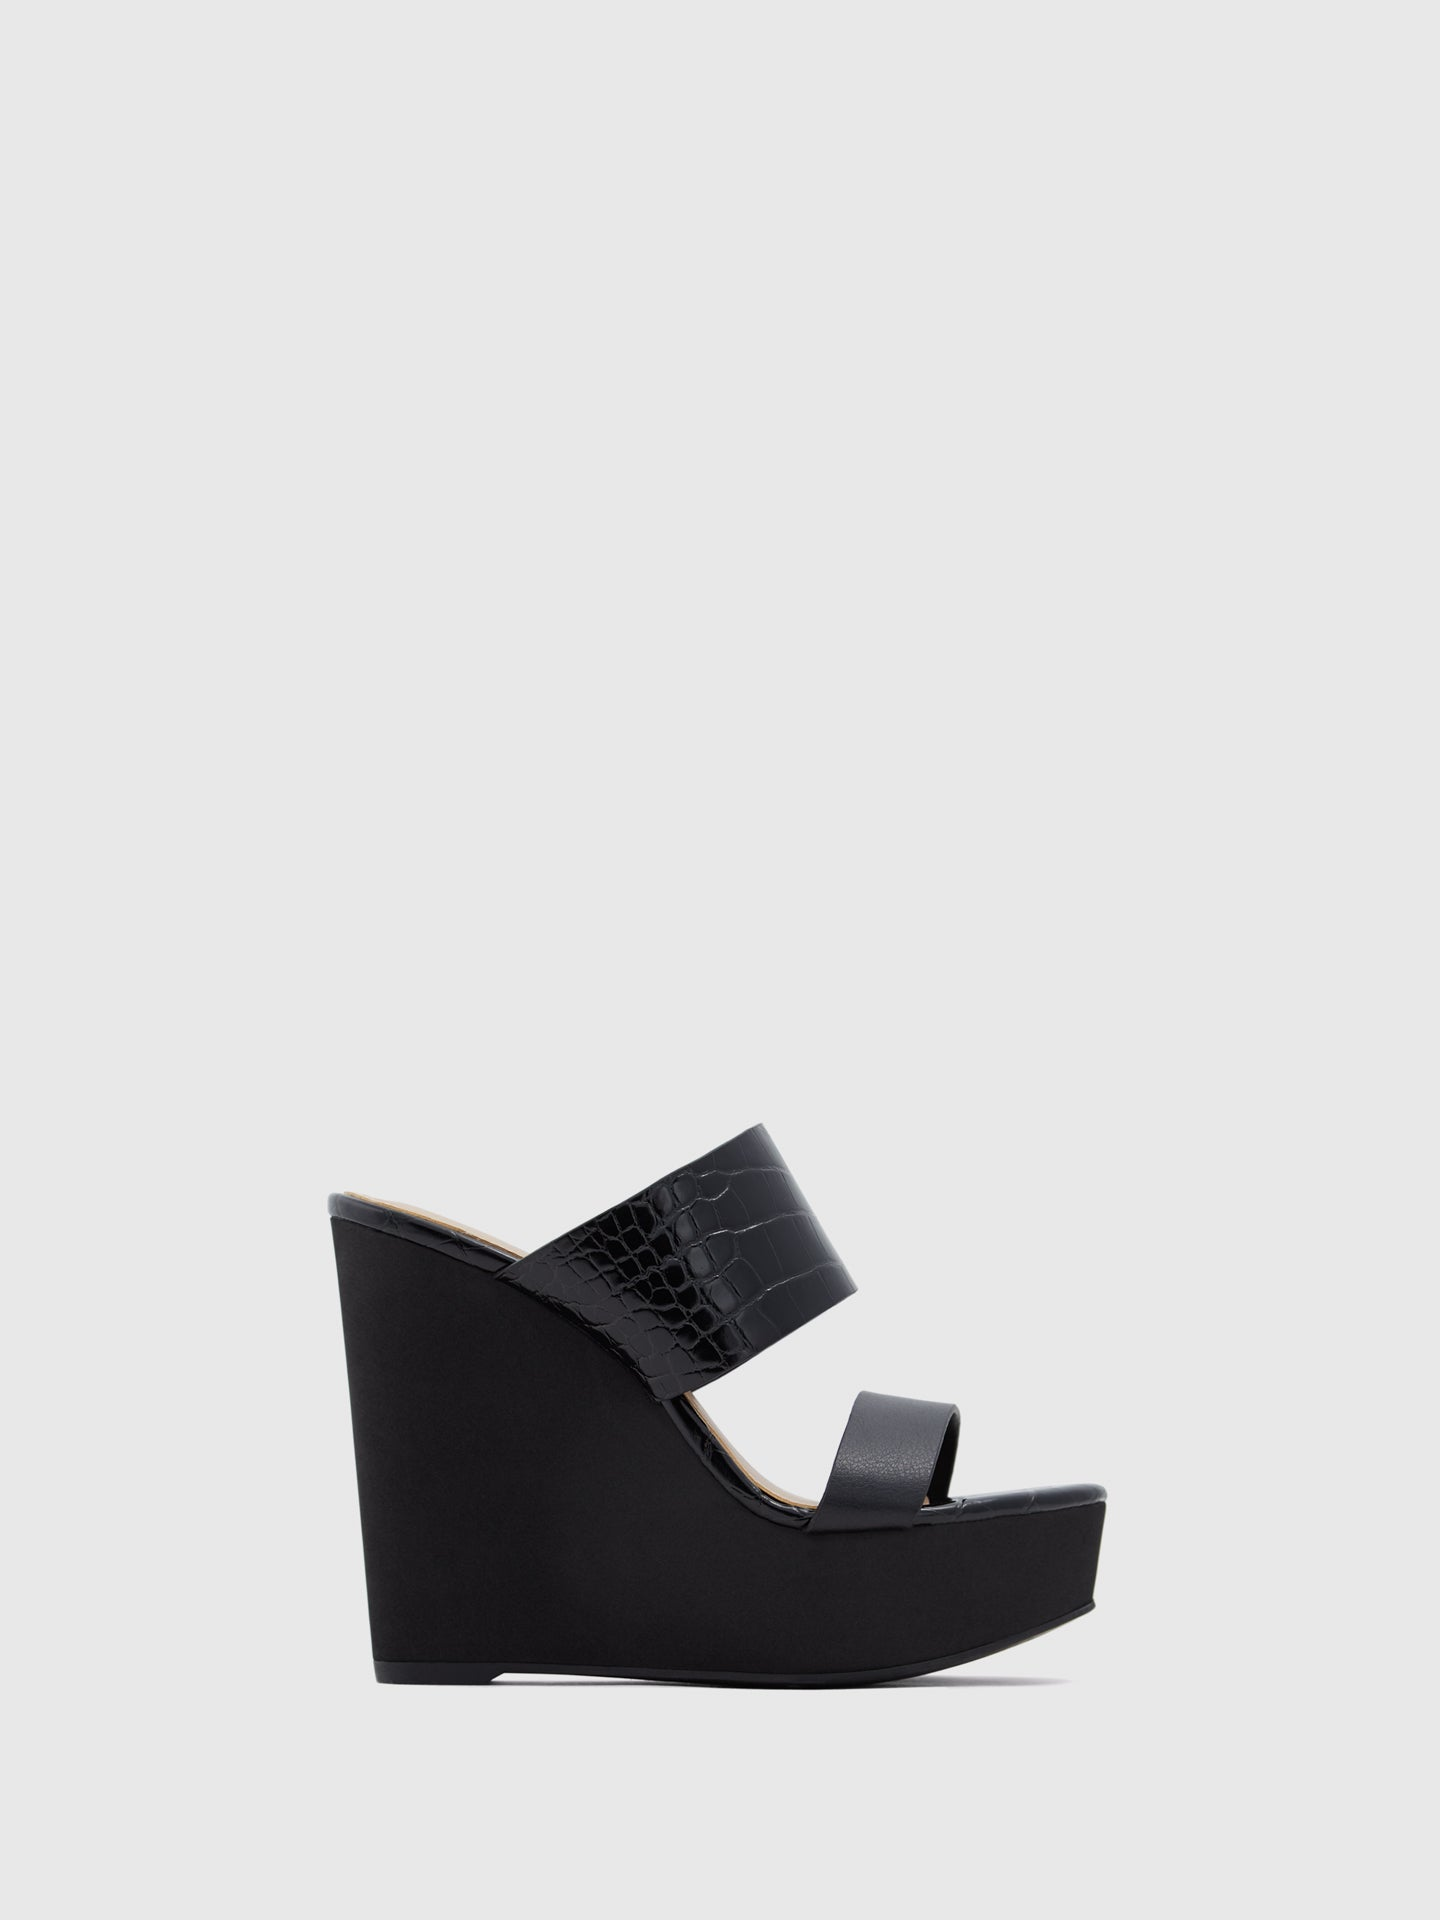 Aldo Black Wedge Sandals